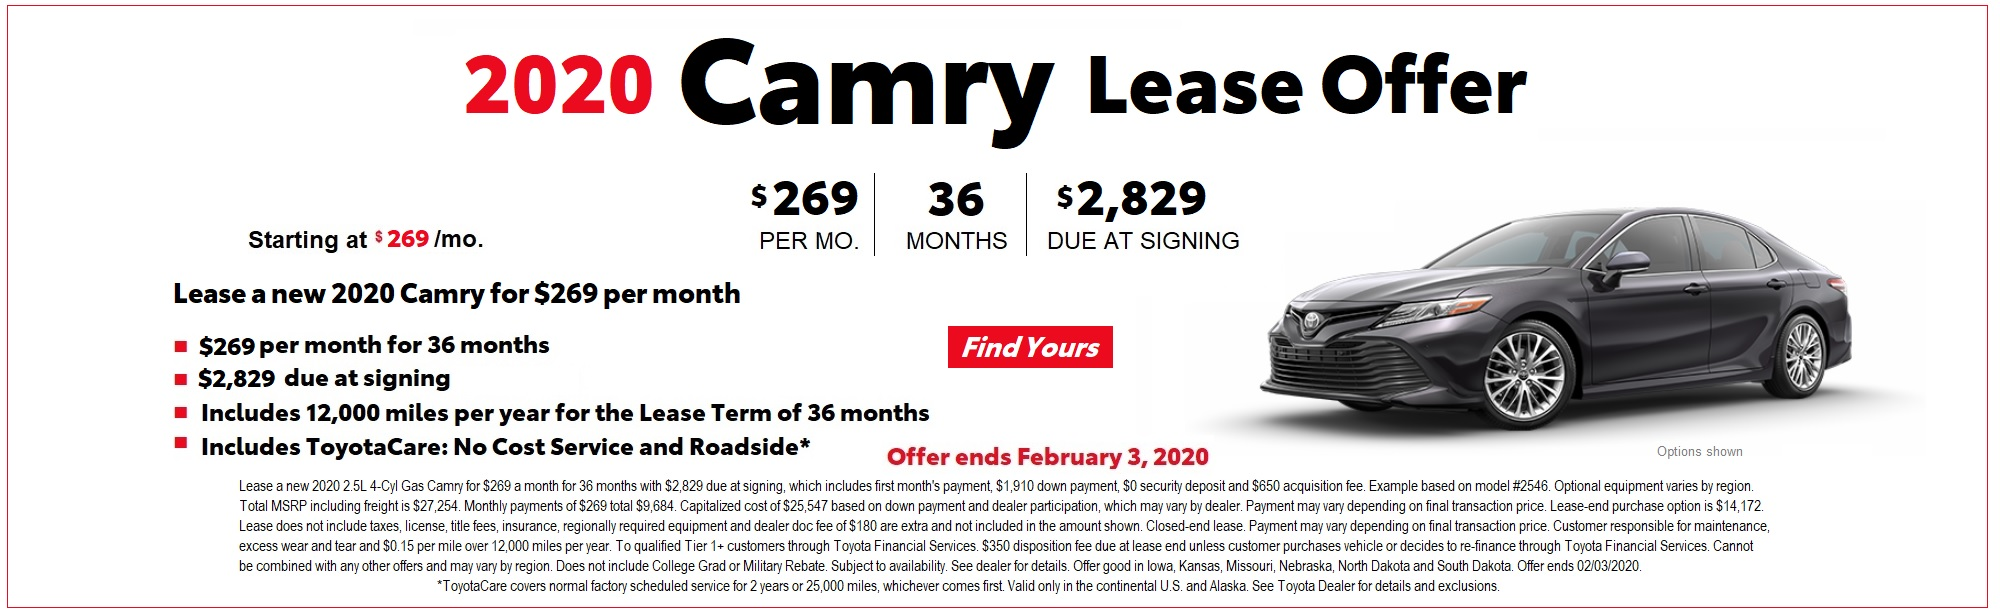 2020 Camry Lease Offer January 2020 at Toyota of Iowa City